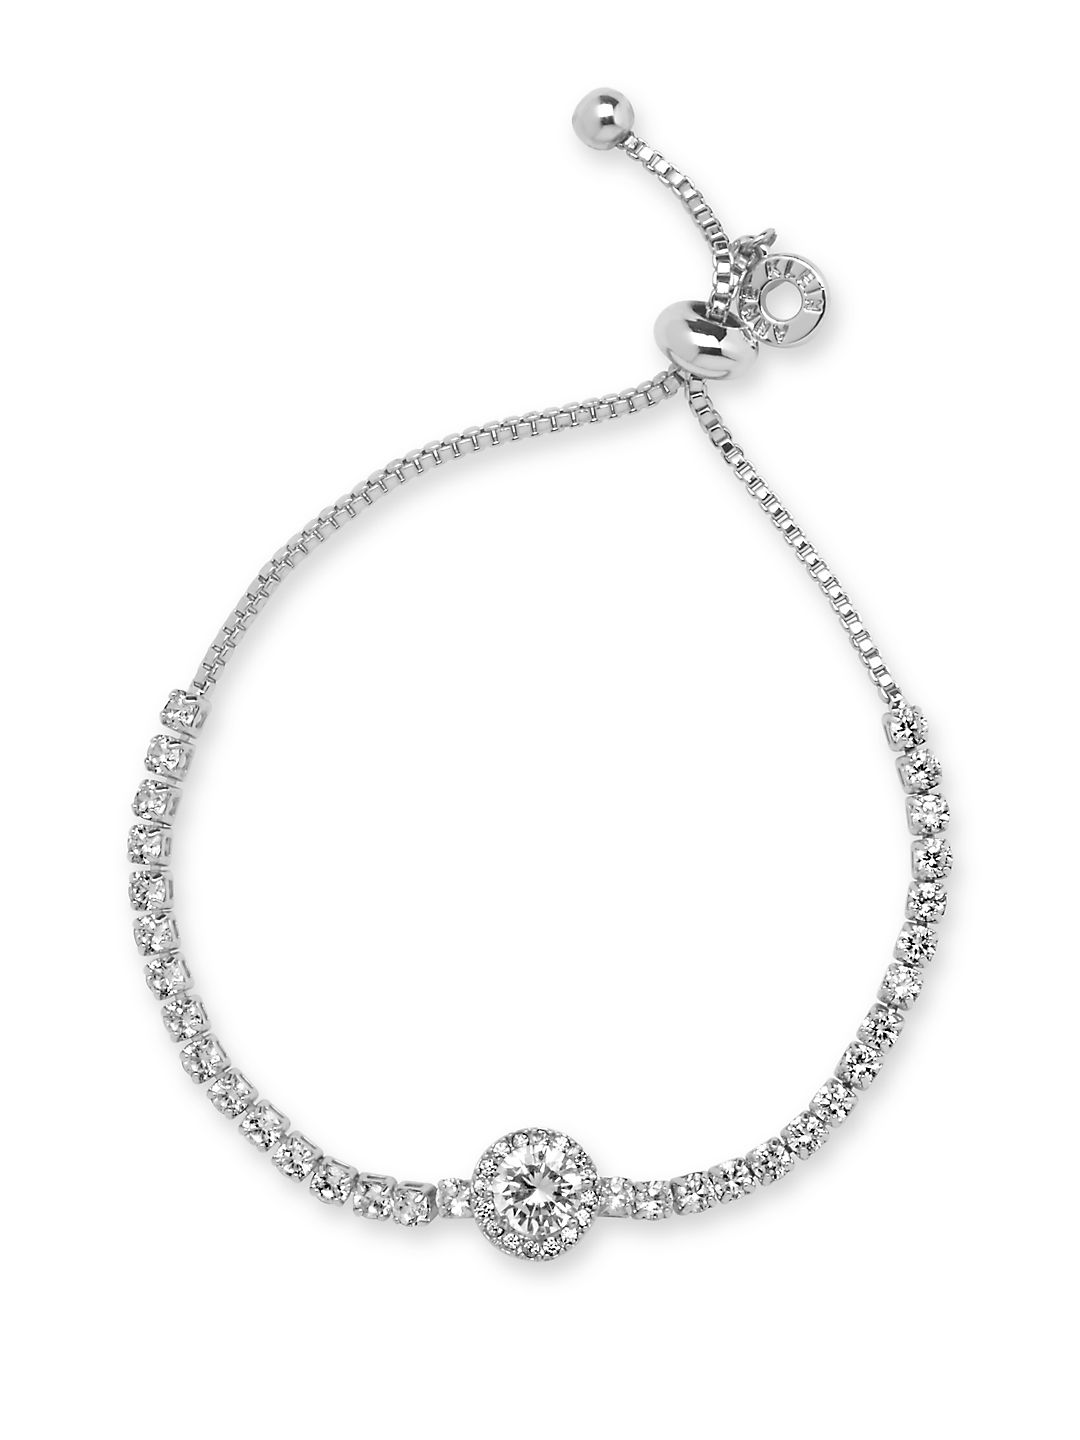 Cubic Zirconia and Crystal Bracelet